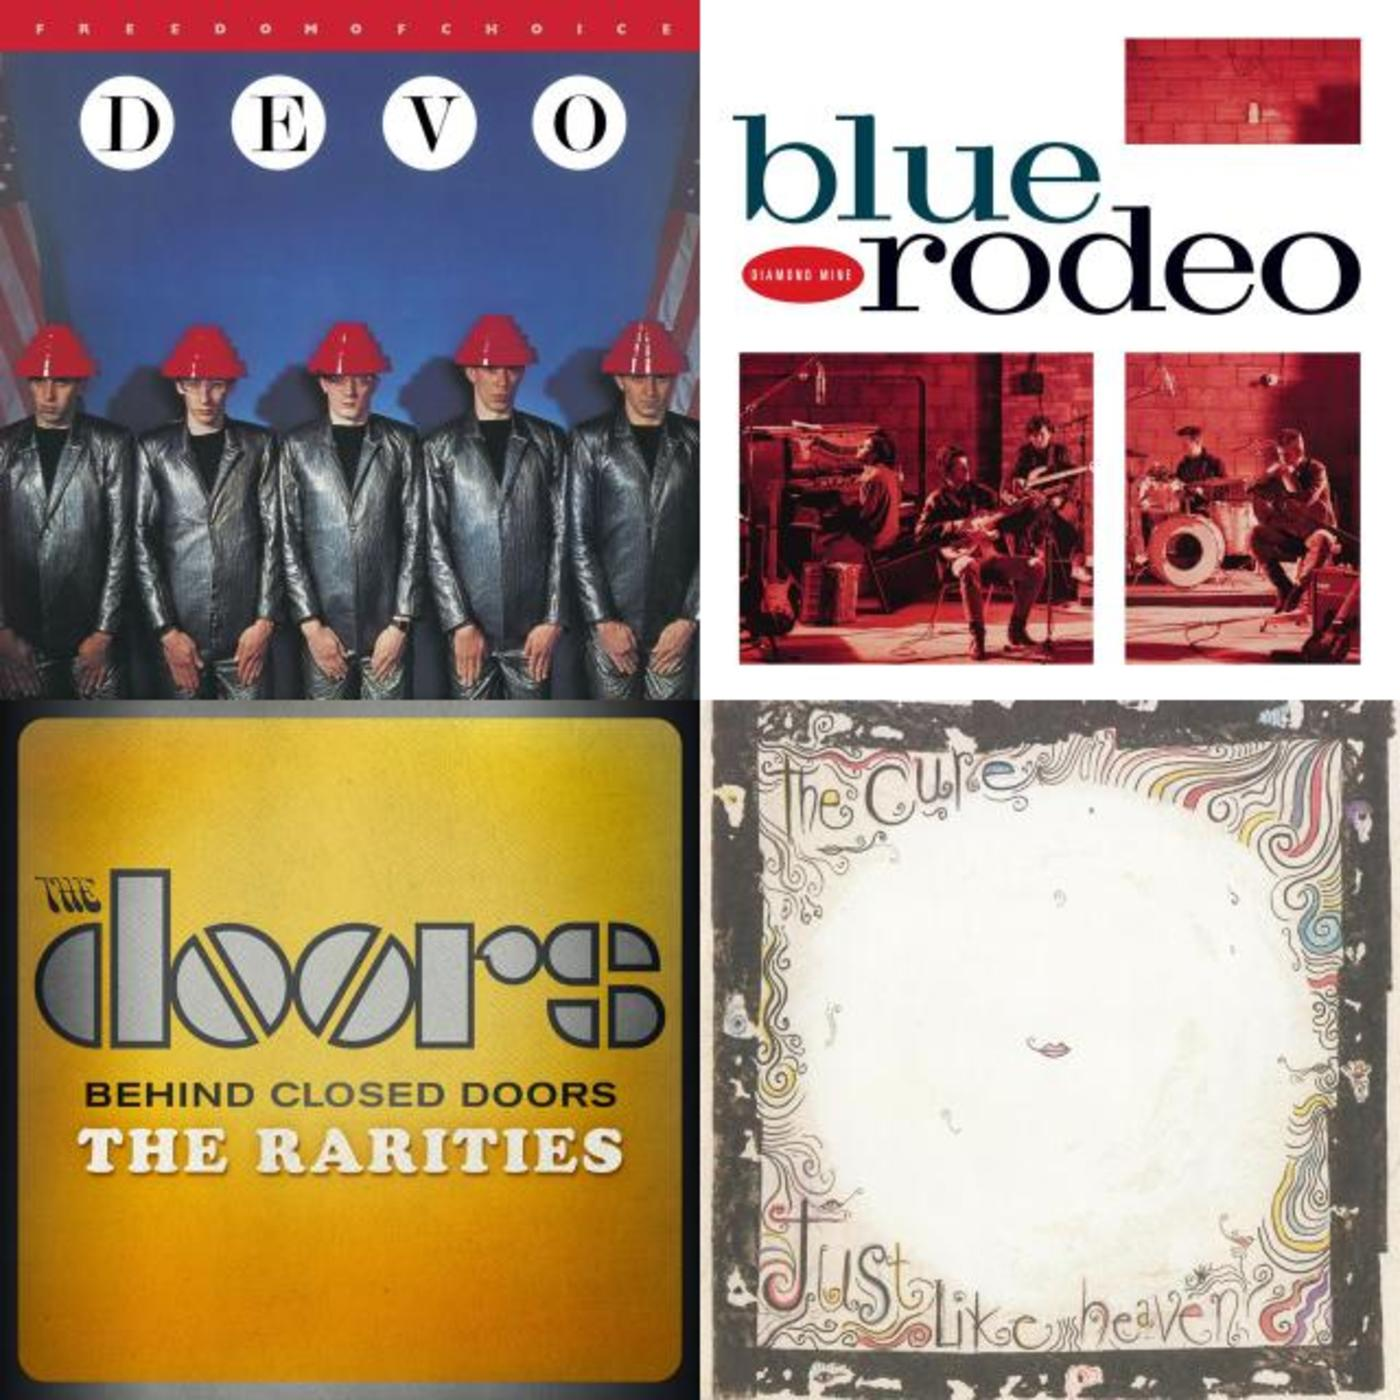 Record Store Day 2014 - Blue Rodeo, The Cure, Devo, The Doors, The Dresden Dolls, The Everly Brothers, Gram Parsons, Fleetwood Mac, Donny Hathaway, Husker Du, Ice T, The Idle Race